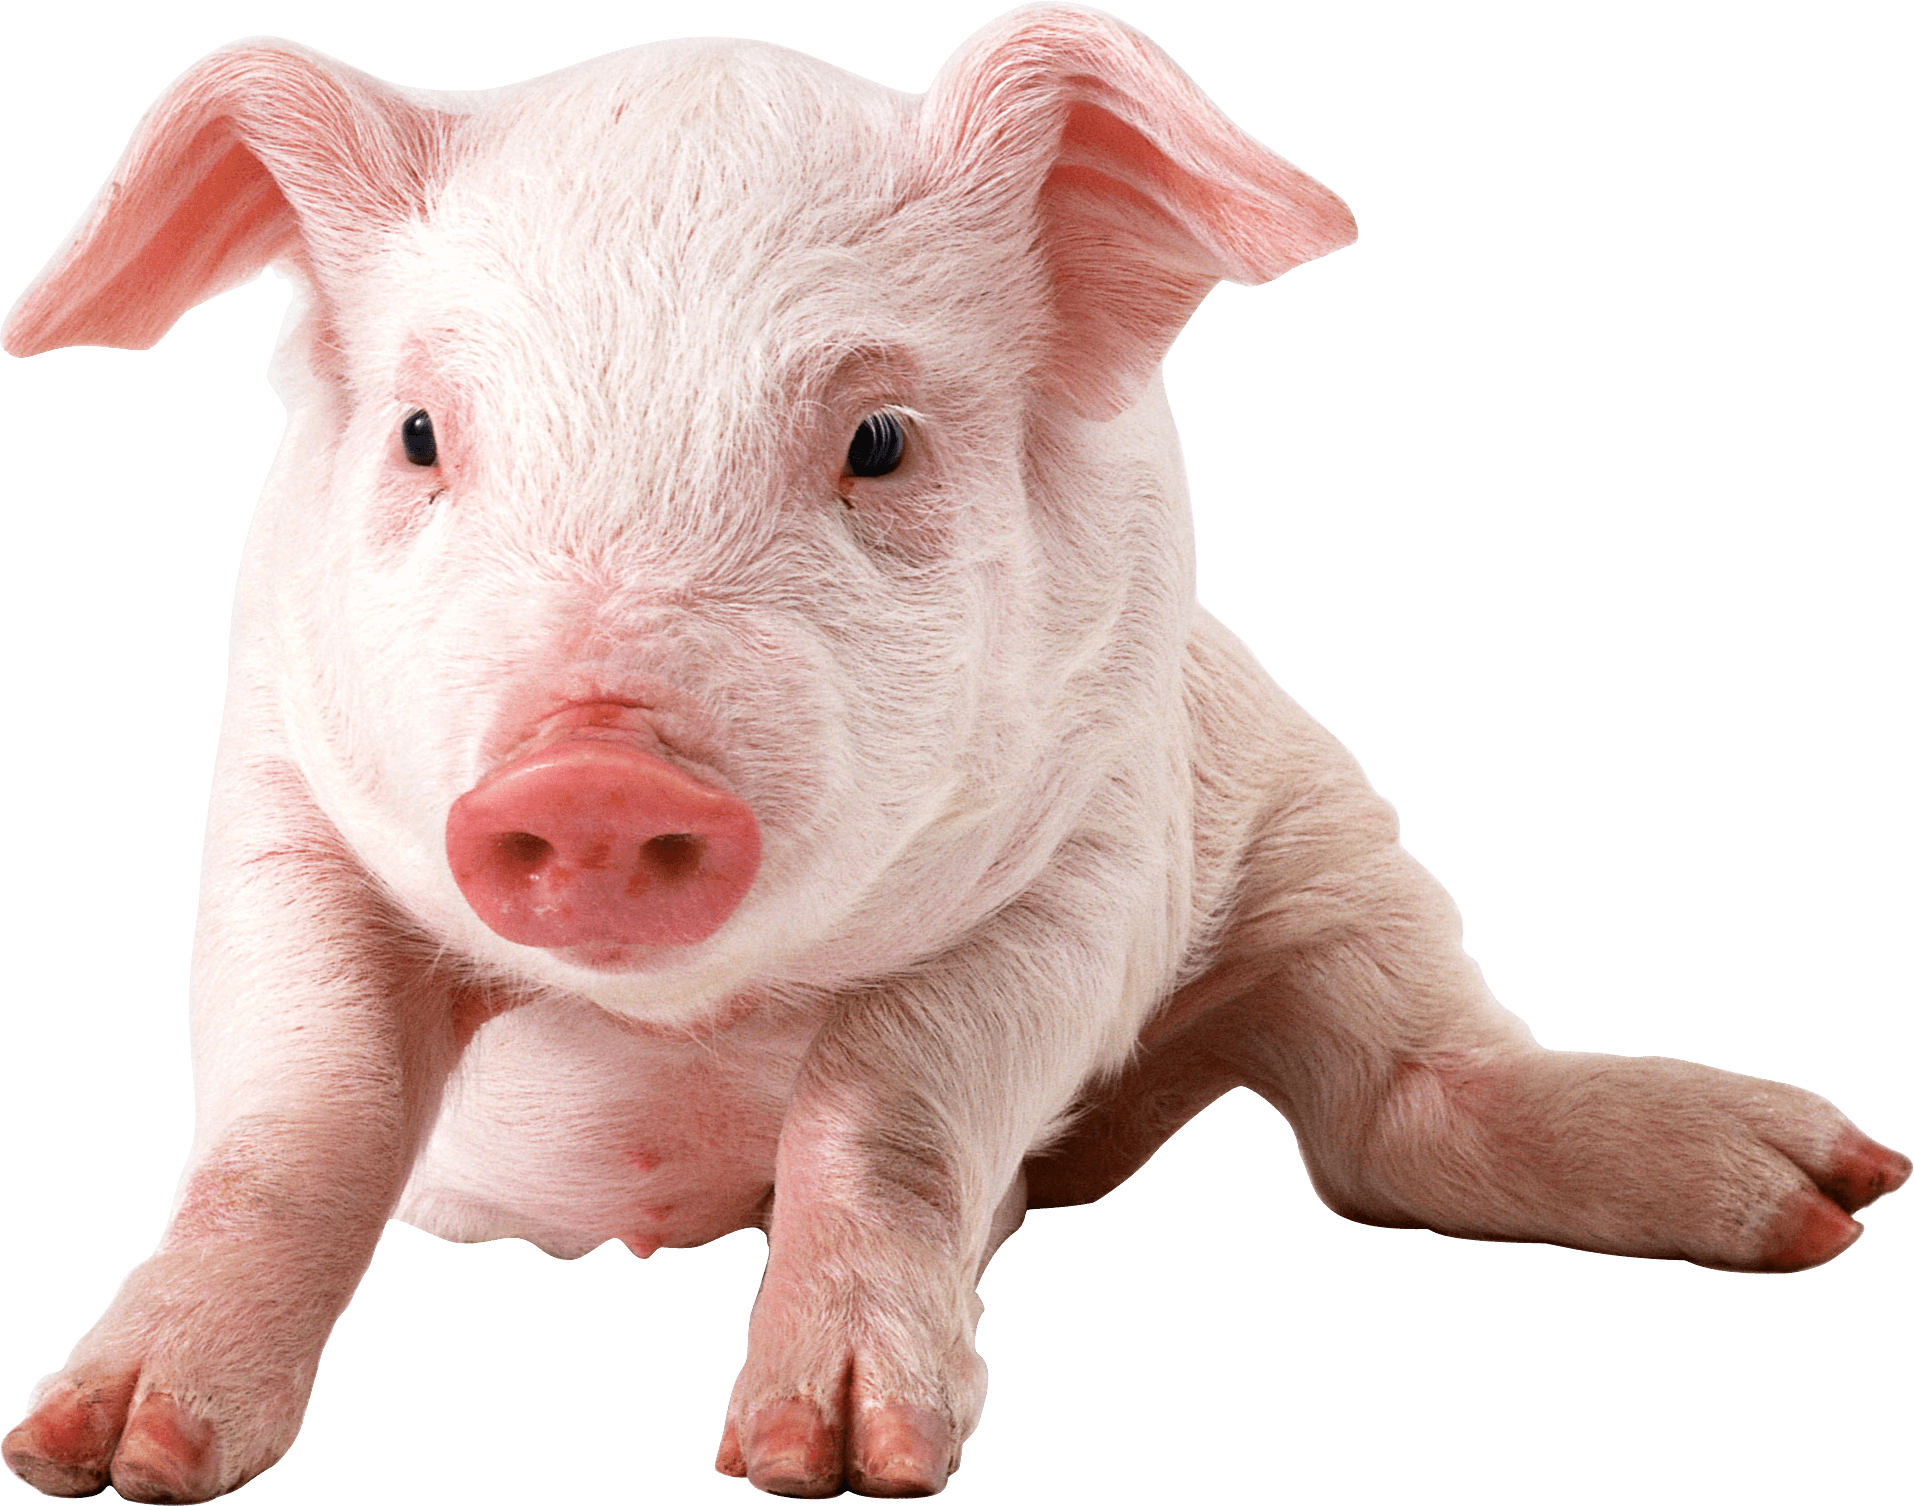 Baby Pig PNG HD - 129630